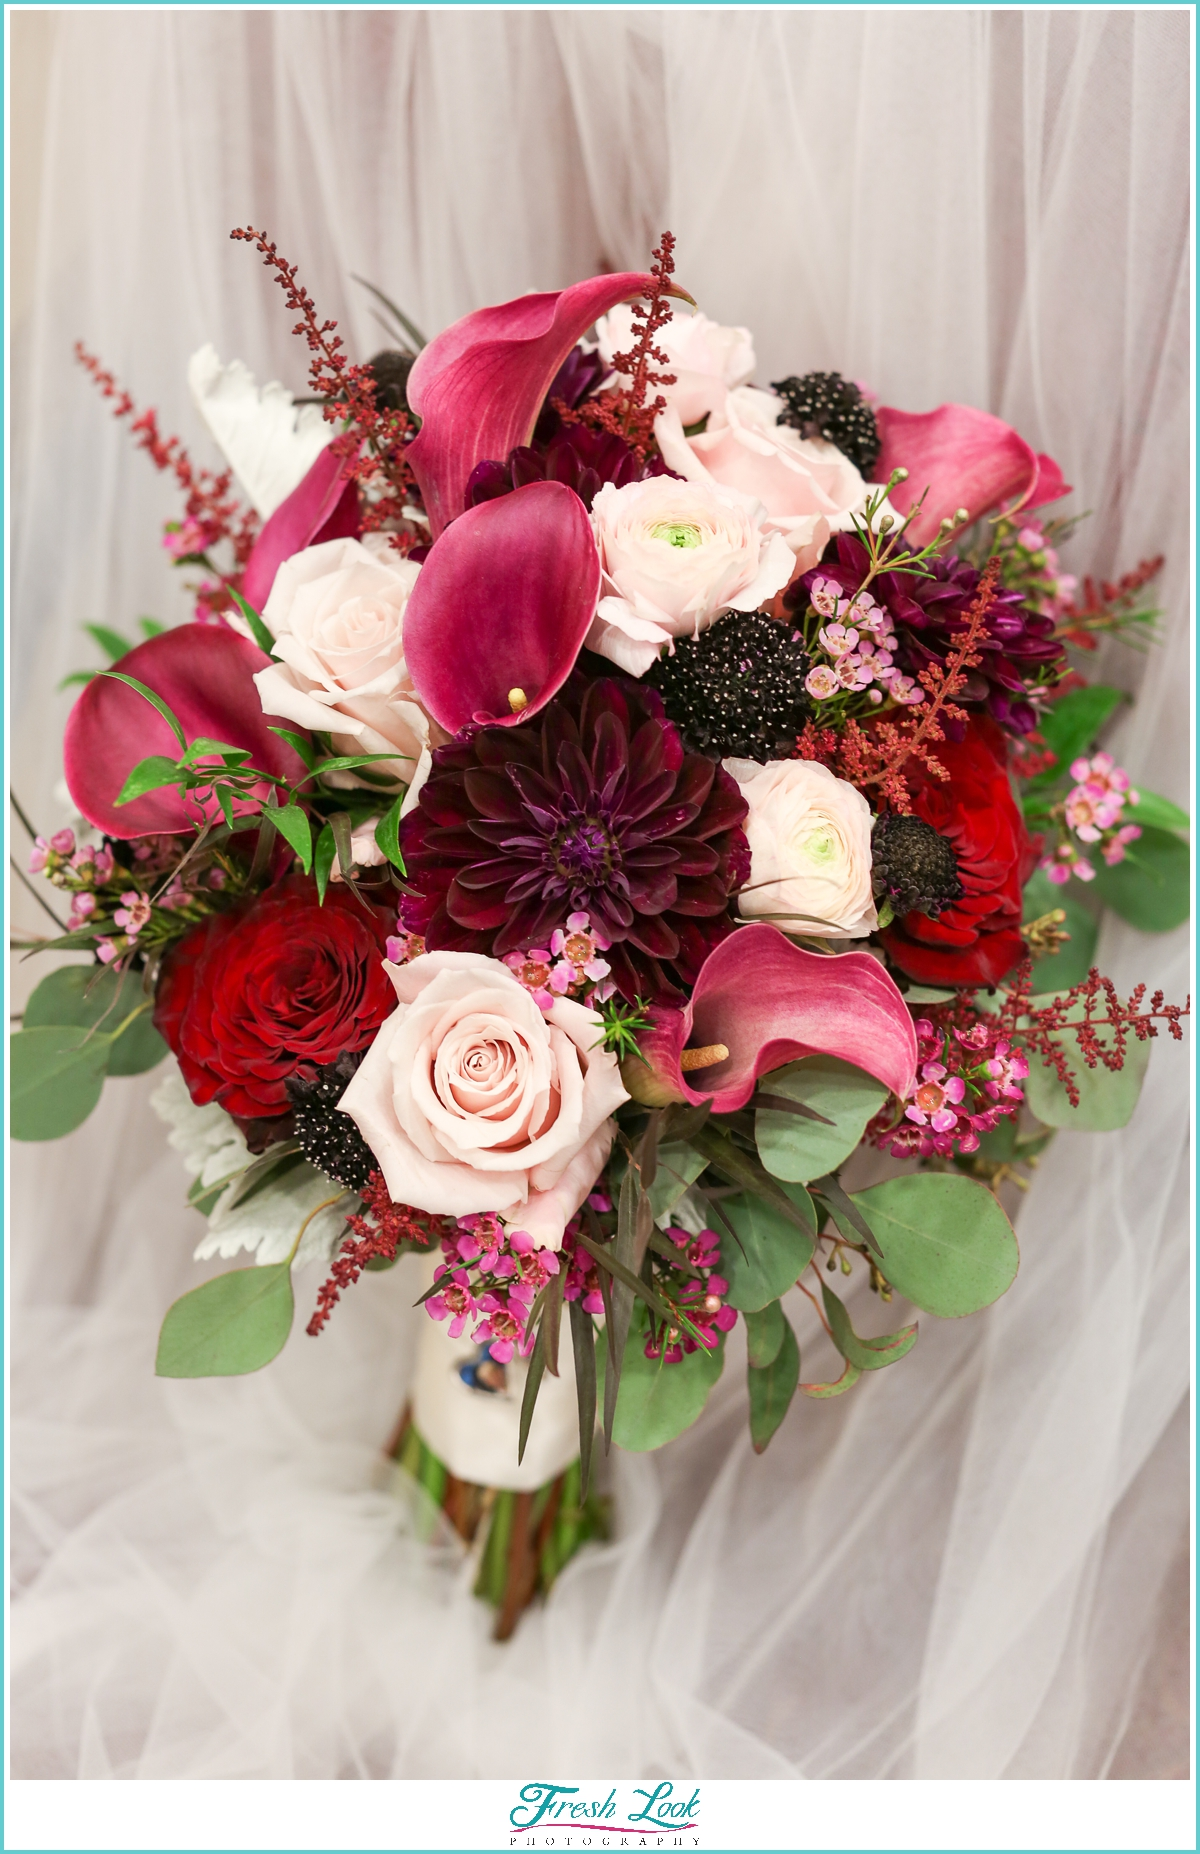 Morrison's flowers and gifts bouquet